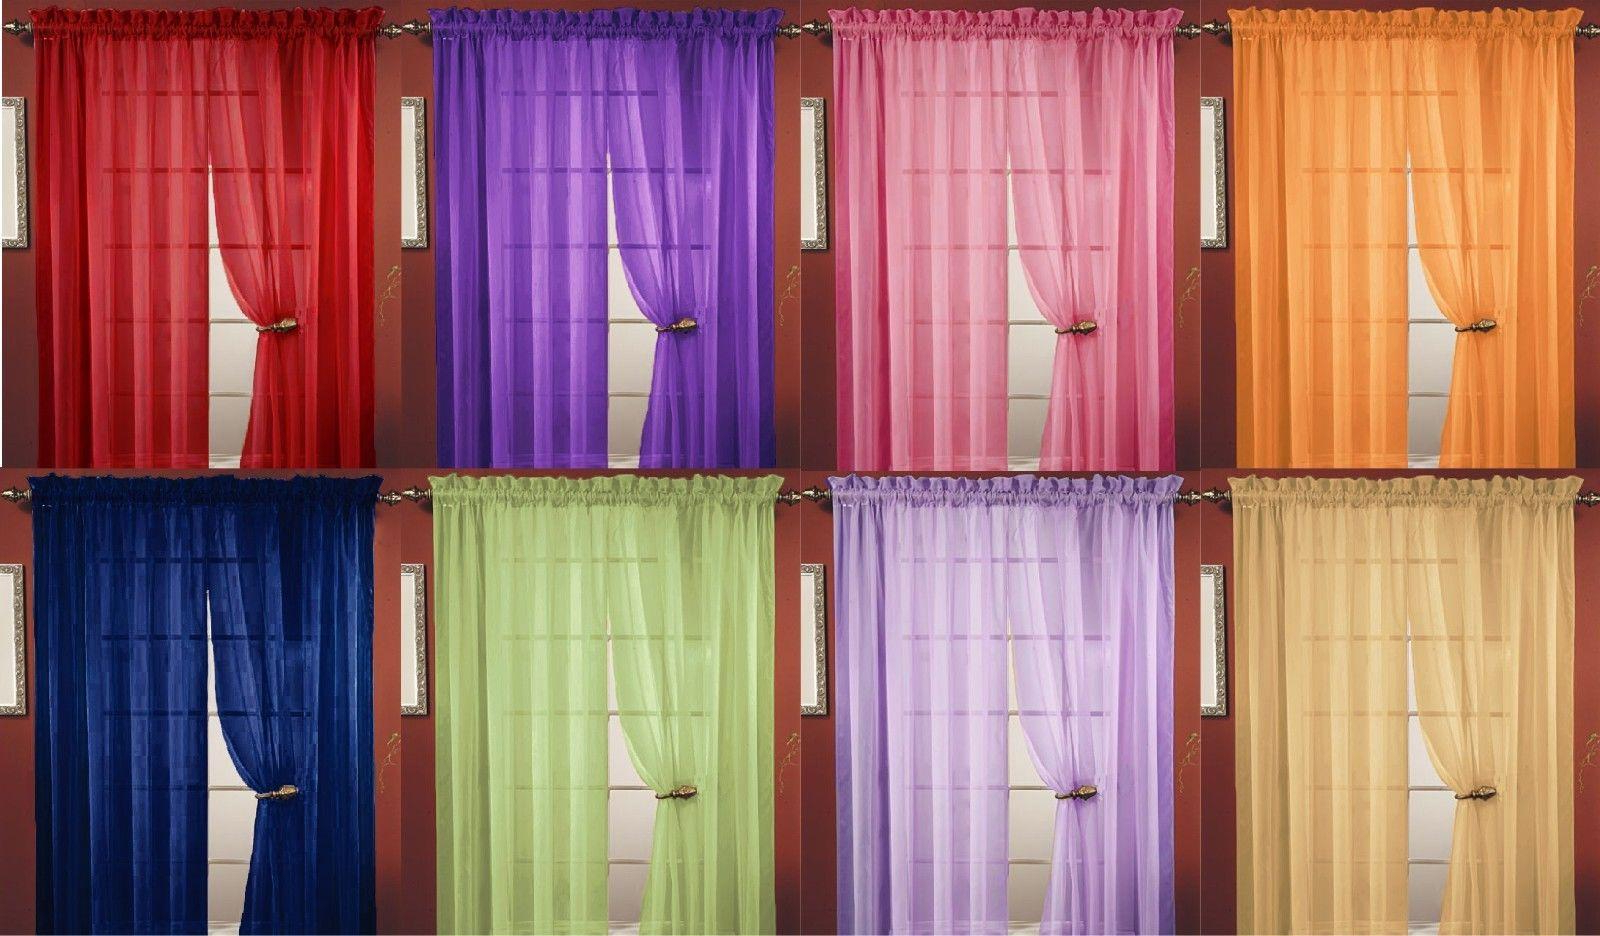 Widely Used Vina Sheer Bird Single Curtain Panels Intended For Window Panel Window Curtains (View 20 of 20)